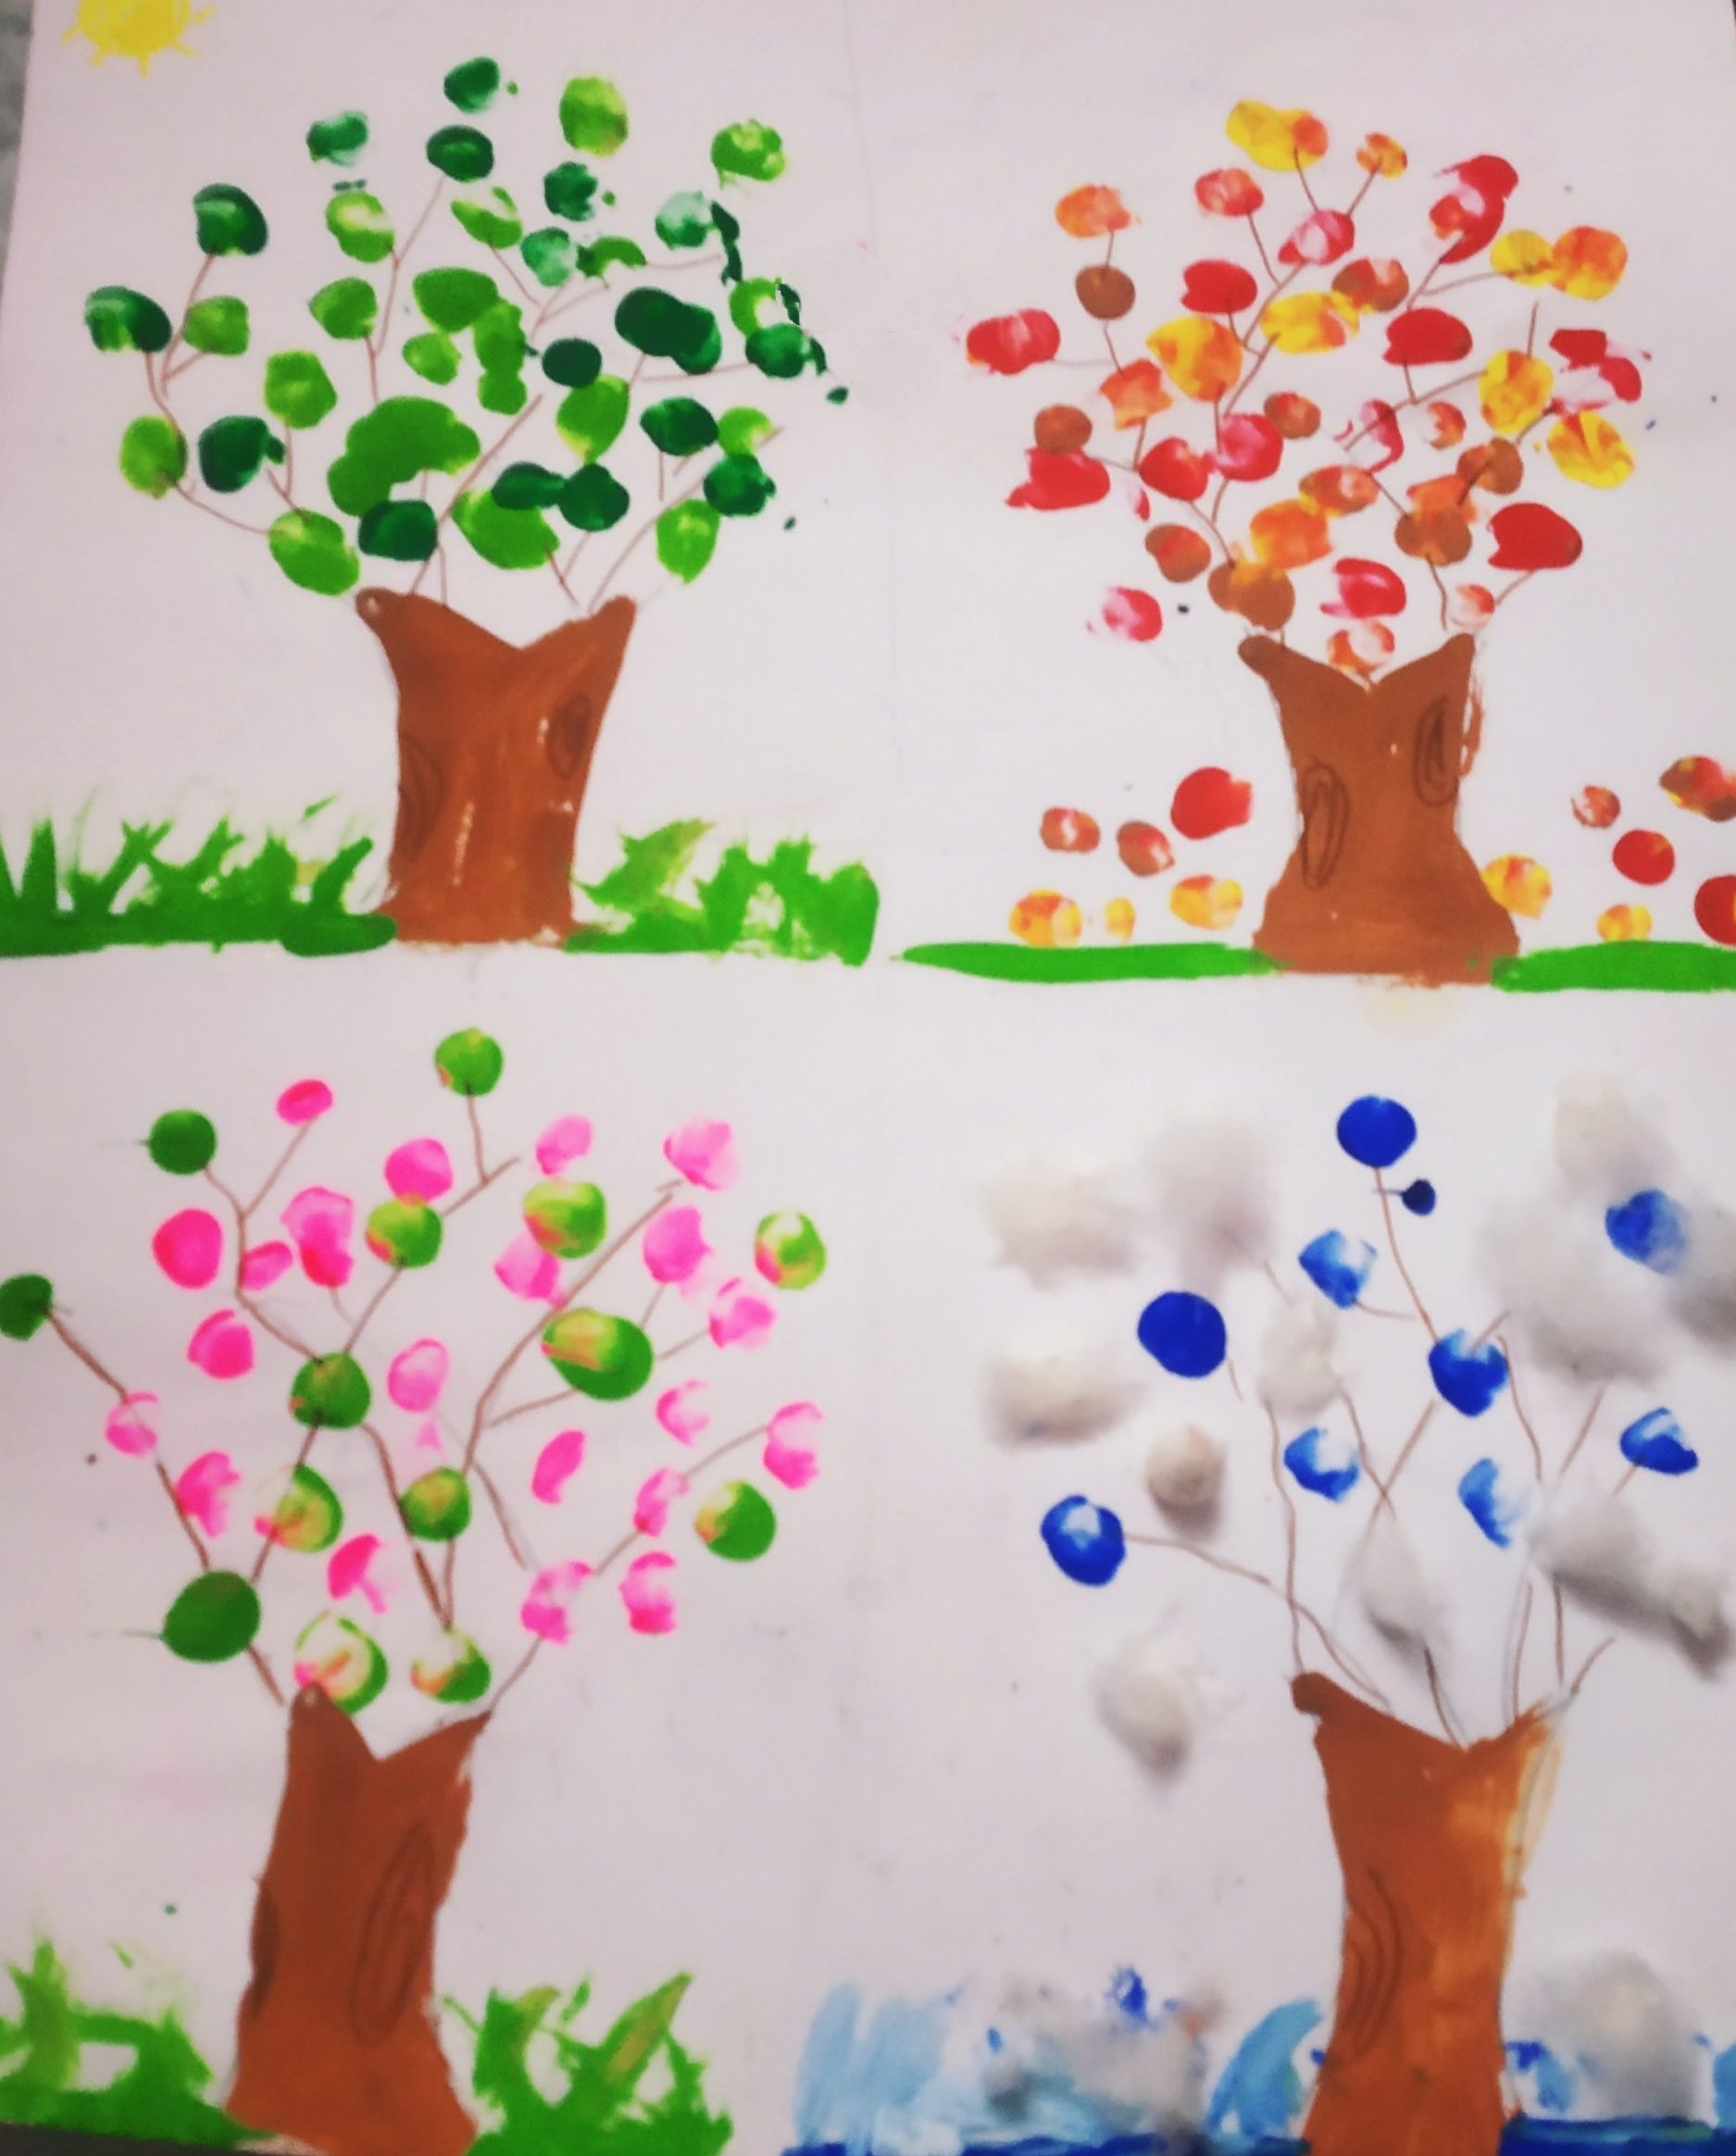 Image depicting colourful trees